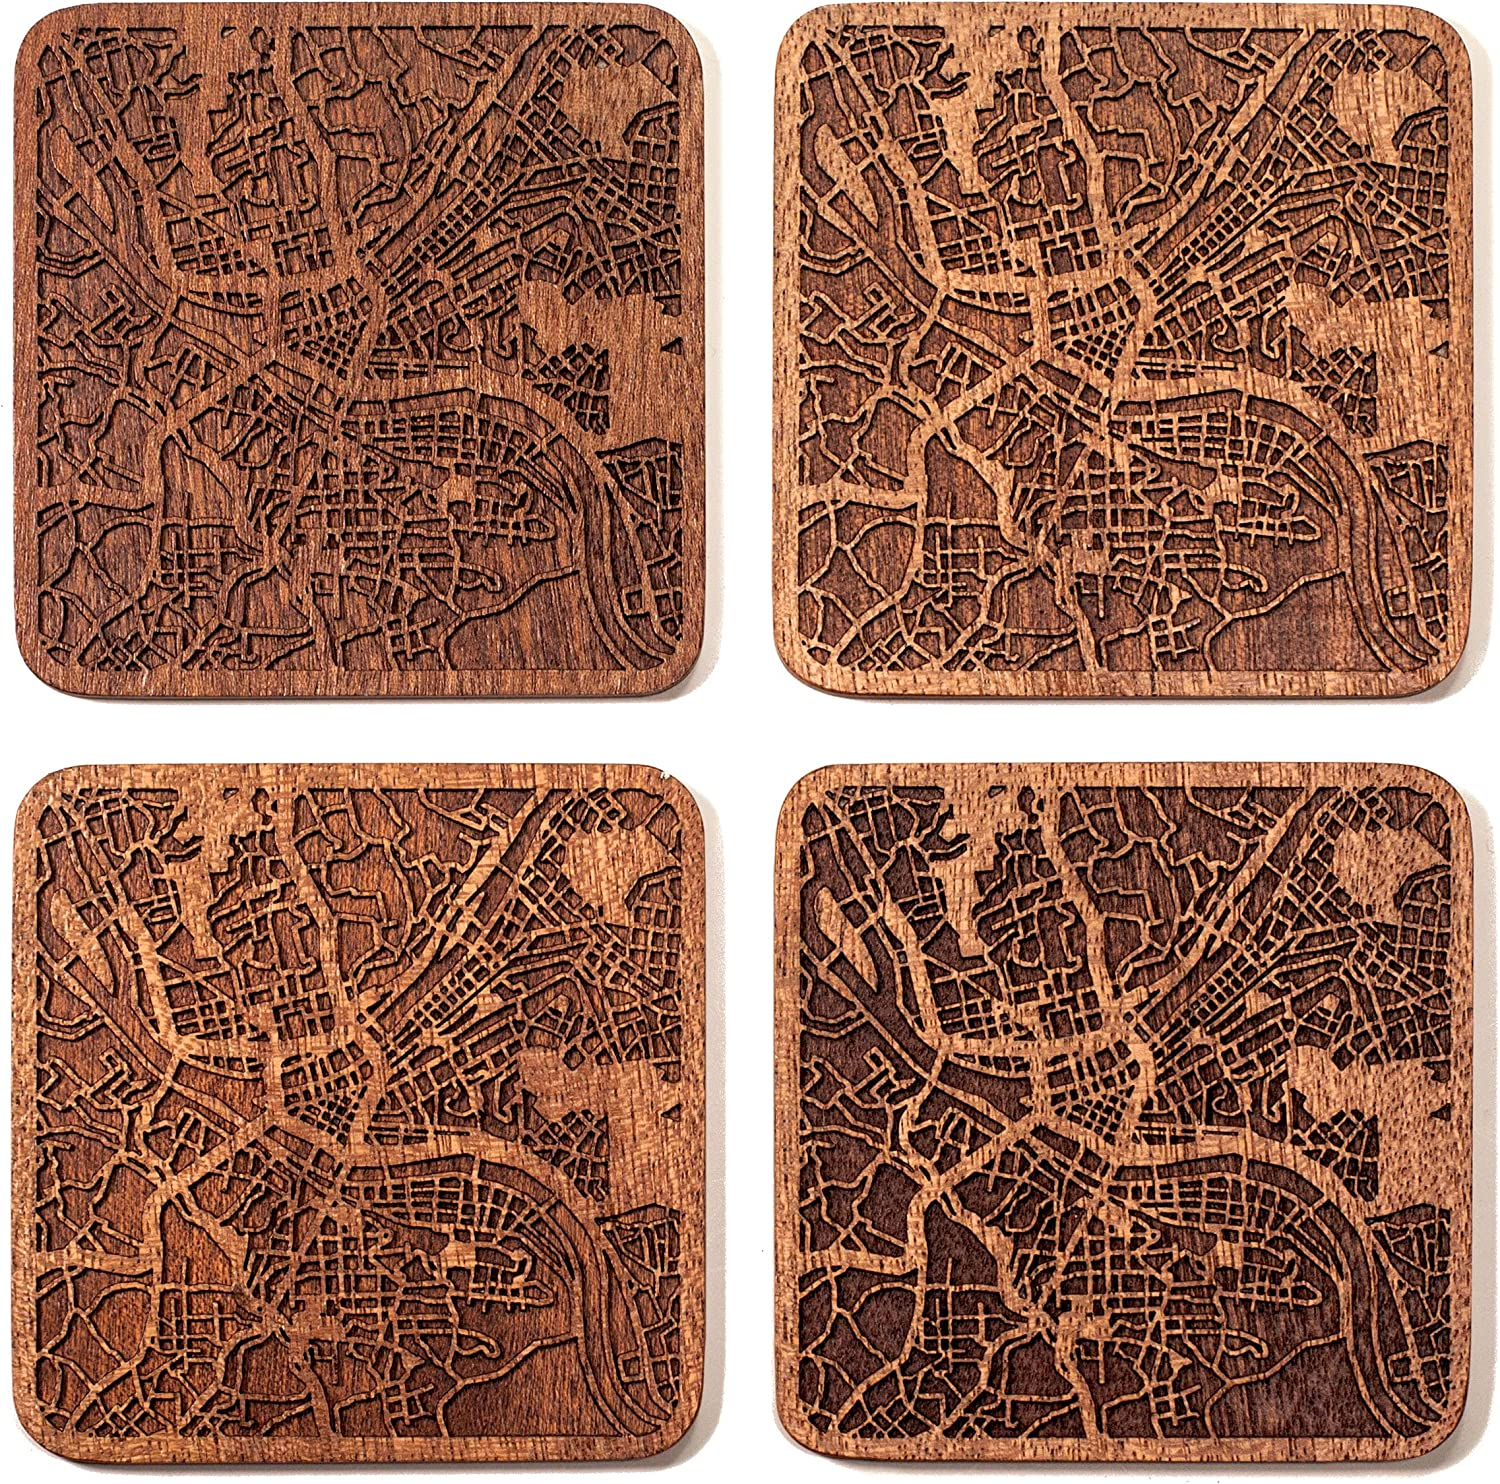 Pittsburgh Map Coaster by O3 Design Studio, Set Of 4, Sapele Wooden Coaster With City Map, Handmade